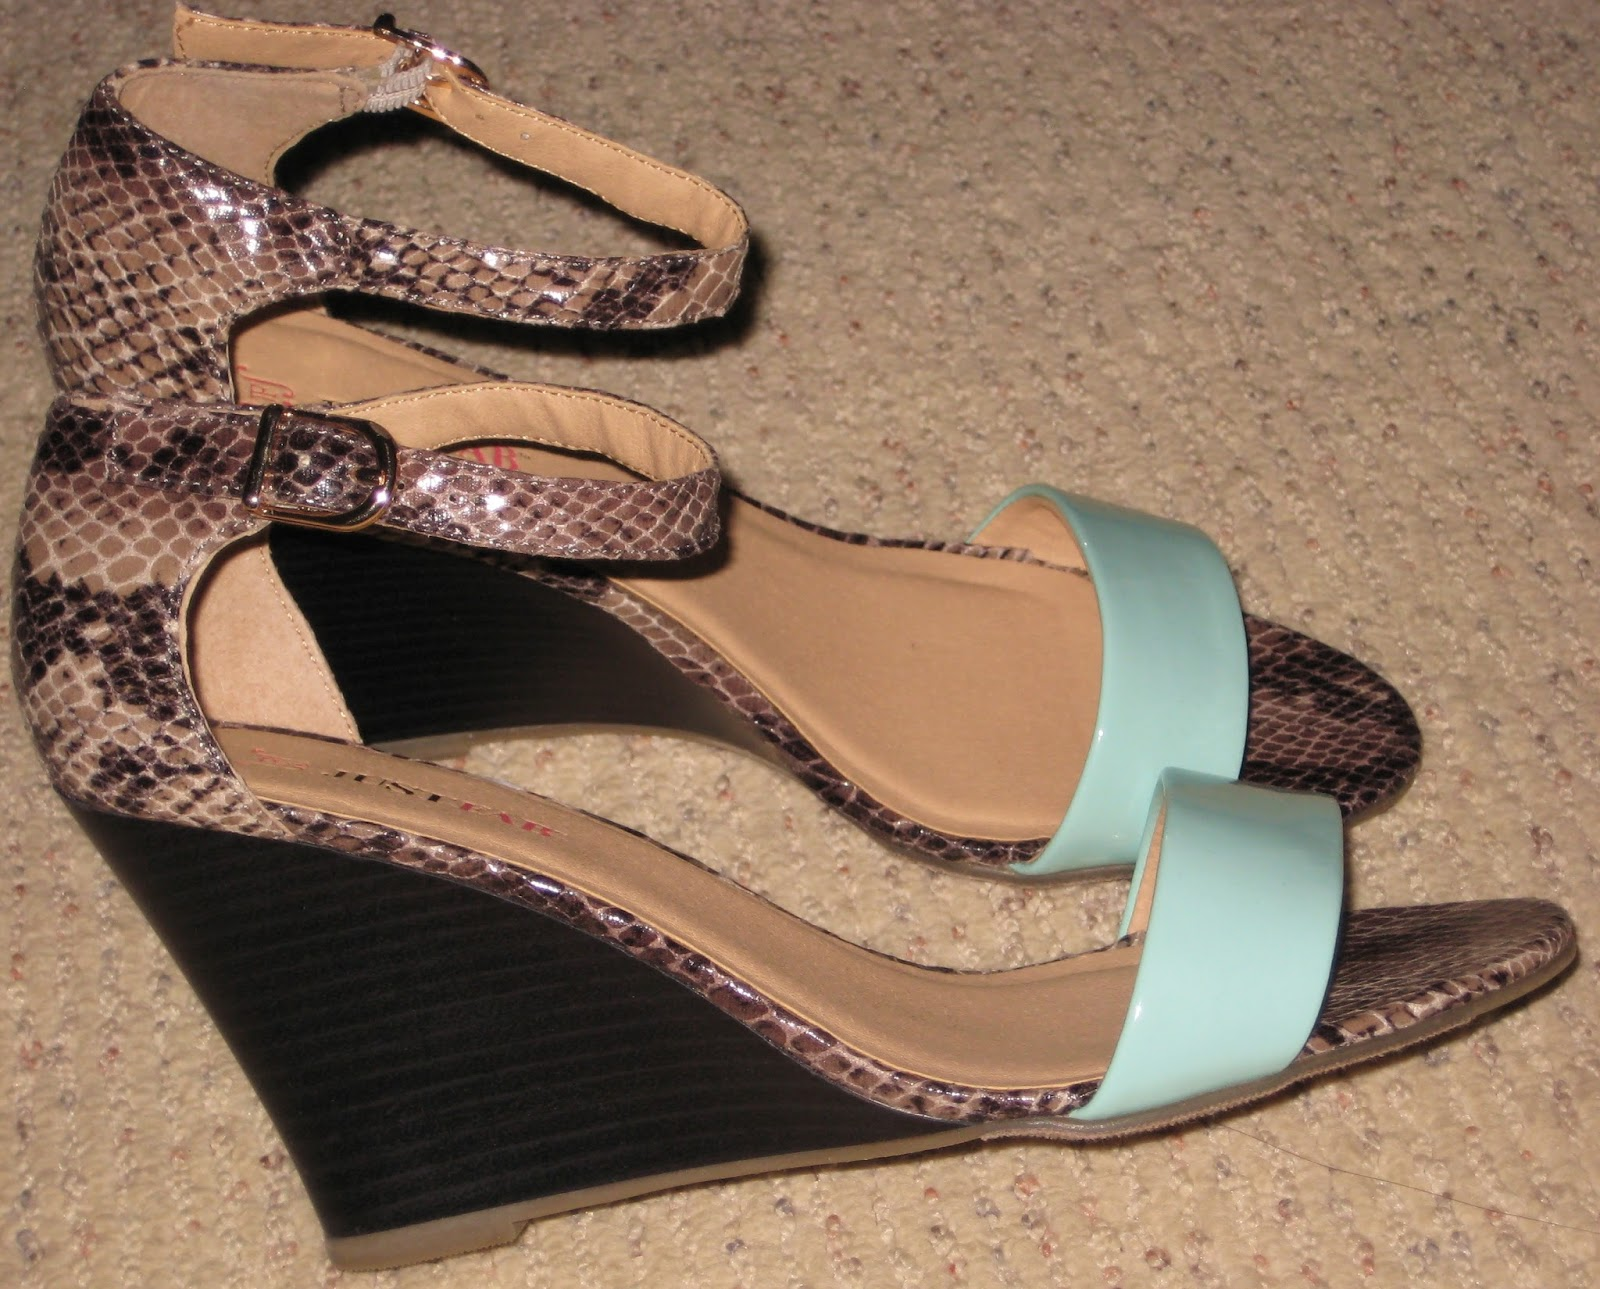 b80f5f73c47 Lady Lostris Beauty  Shoe HAUL  Forever 21